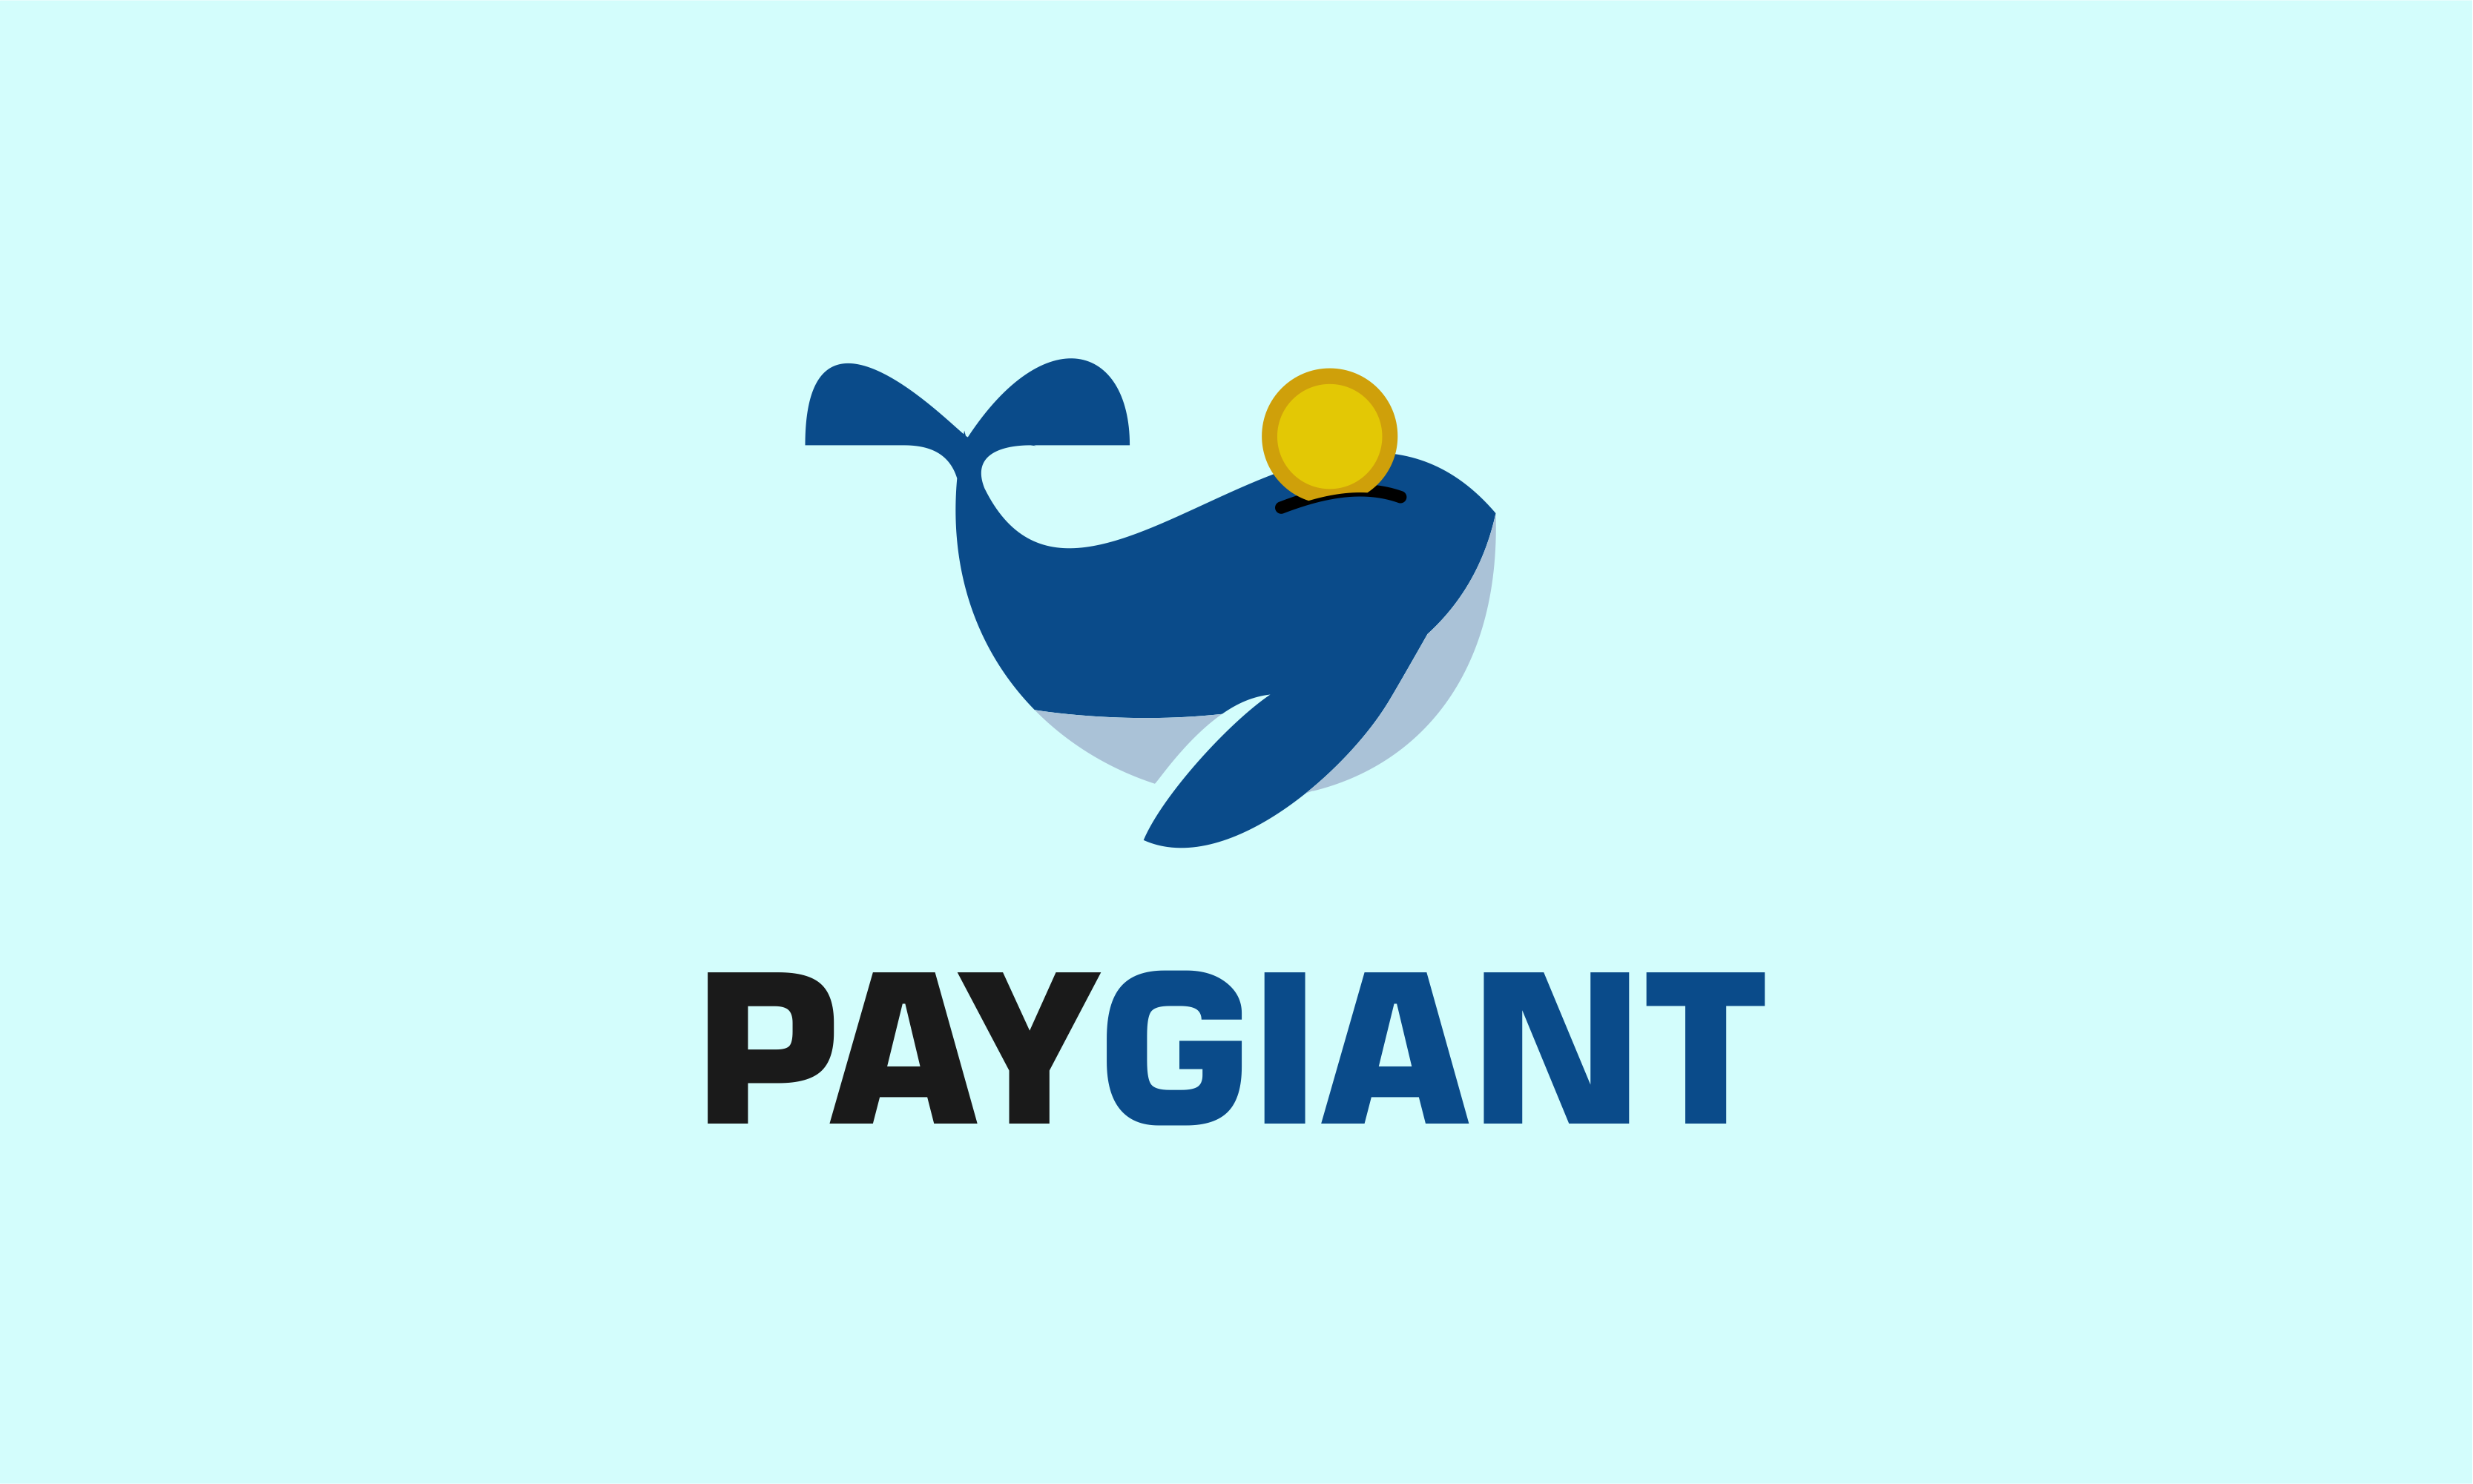 Paygiant